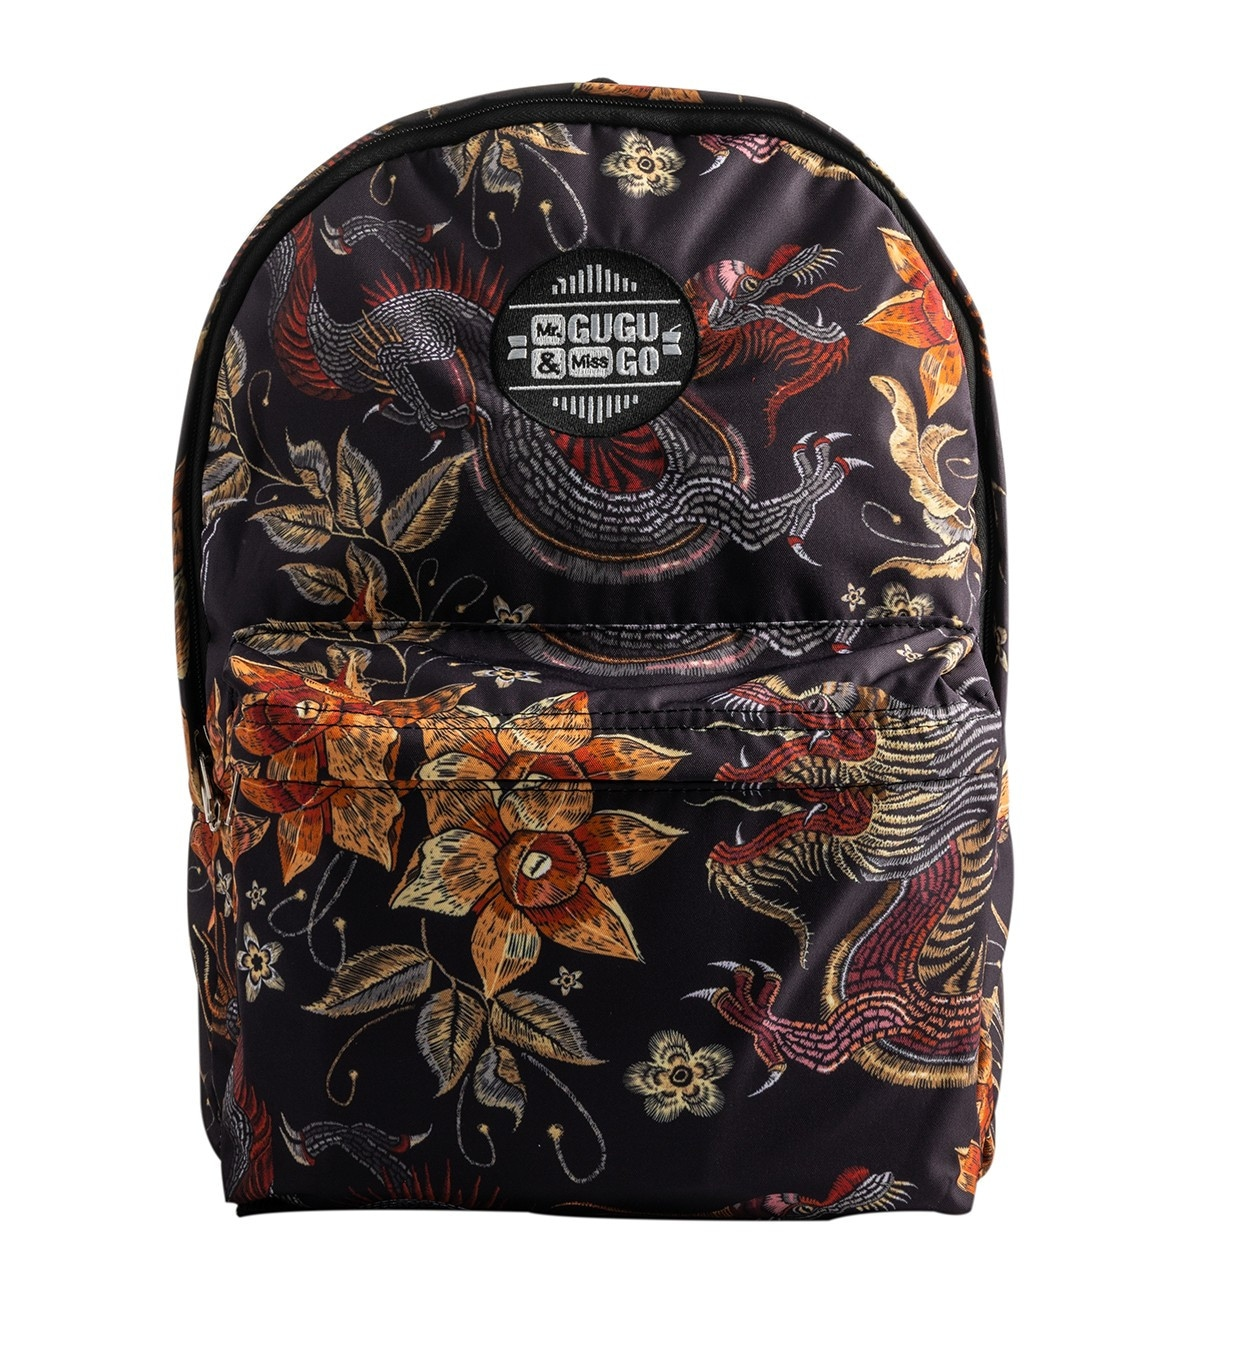 Mr. GUGU & Miss GO Unisex's Backpack BPS047